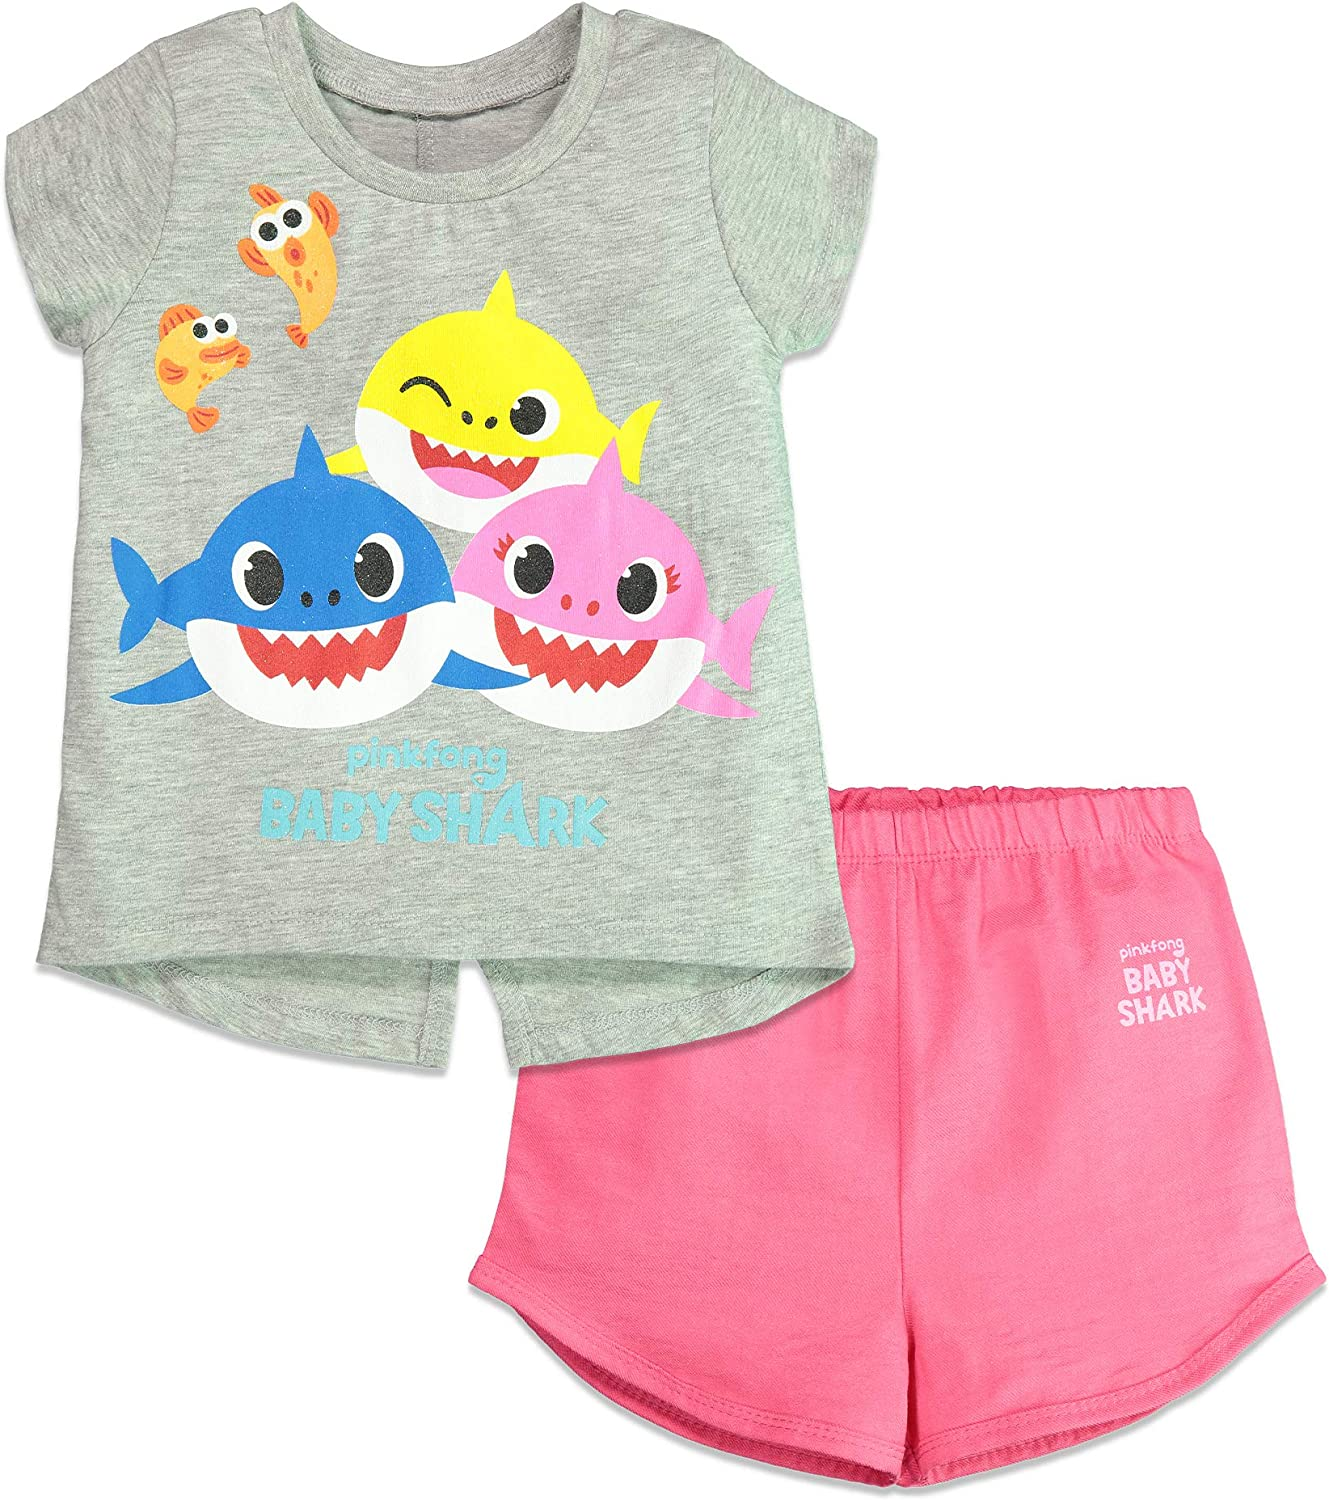 Baby Shark Girls Short Sleeve T-Shirt & Shorts Set